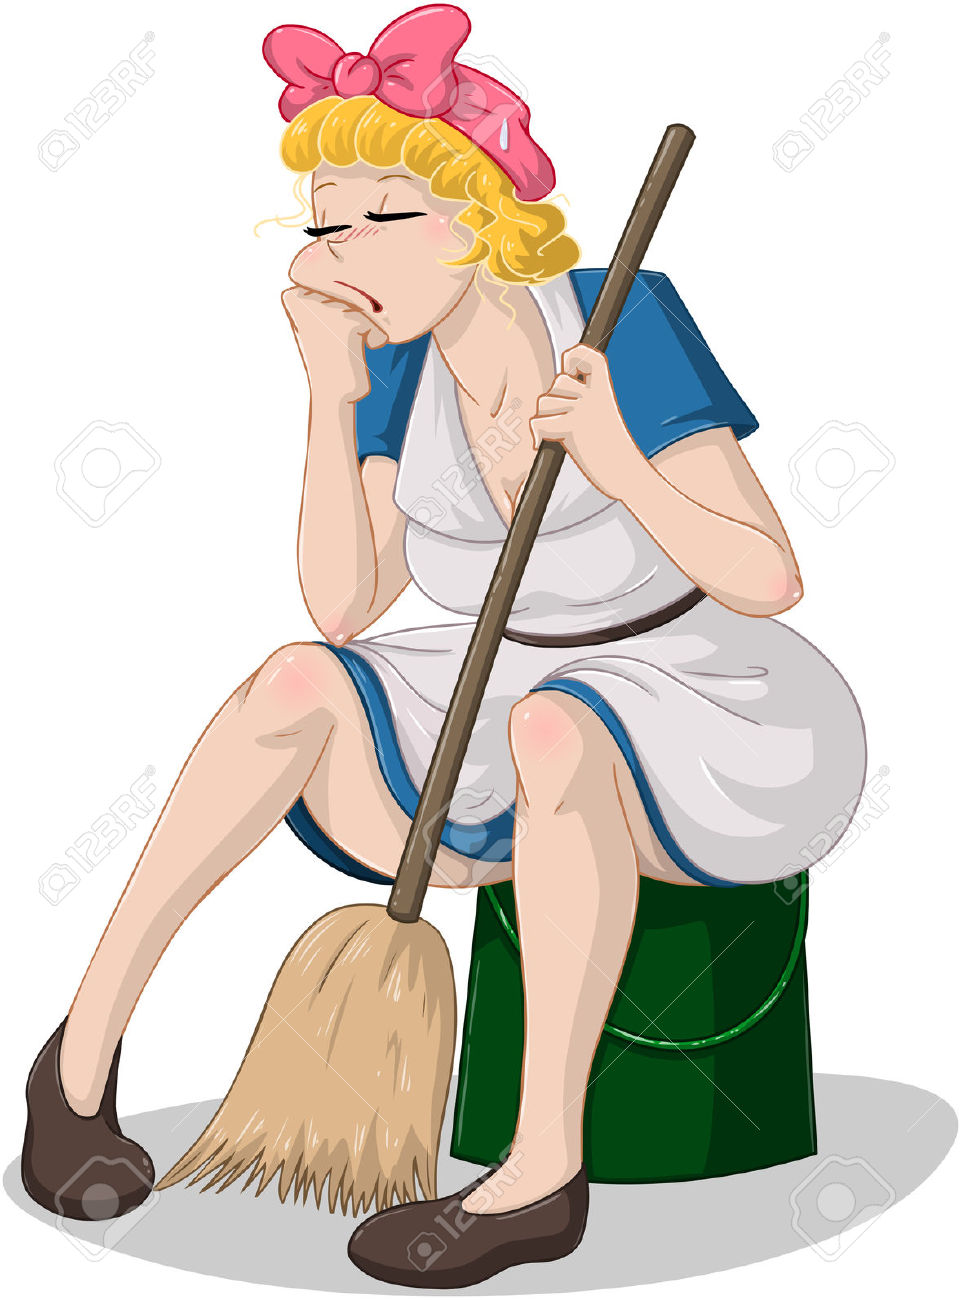 3,428 Cleaning Woman Cliparts, Stock Vector And Royalty Free.